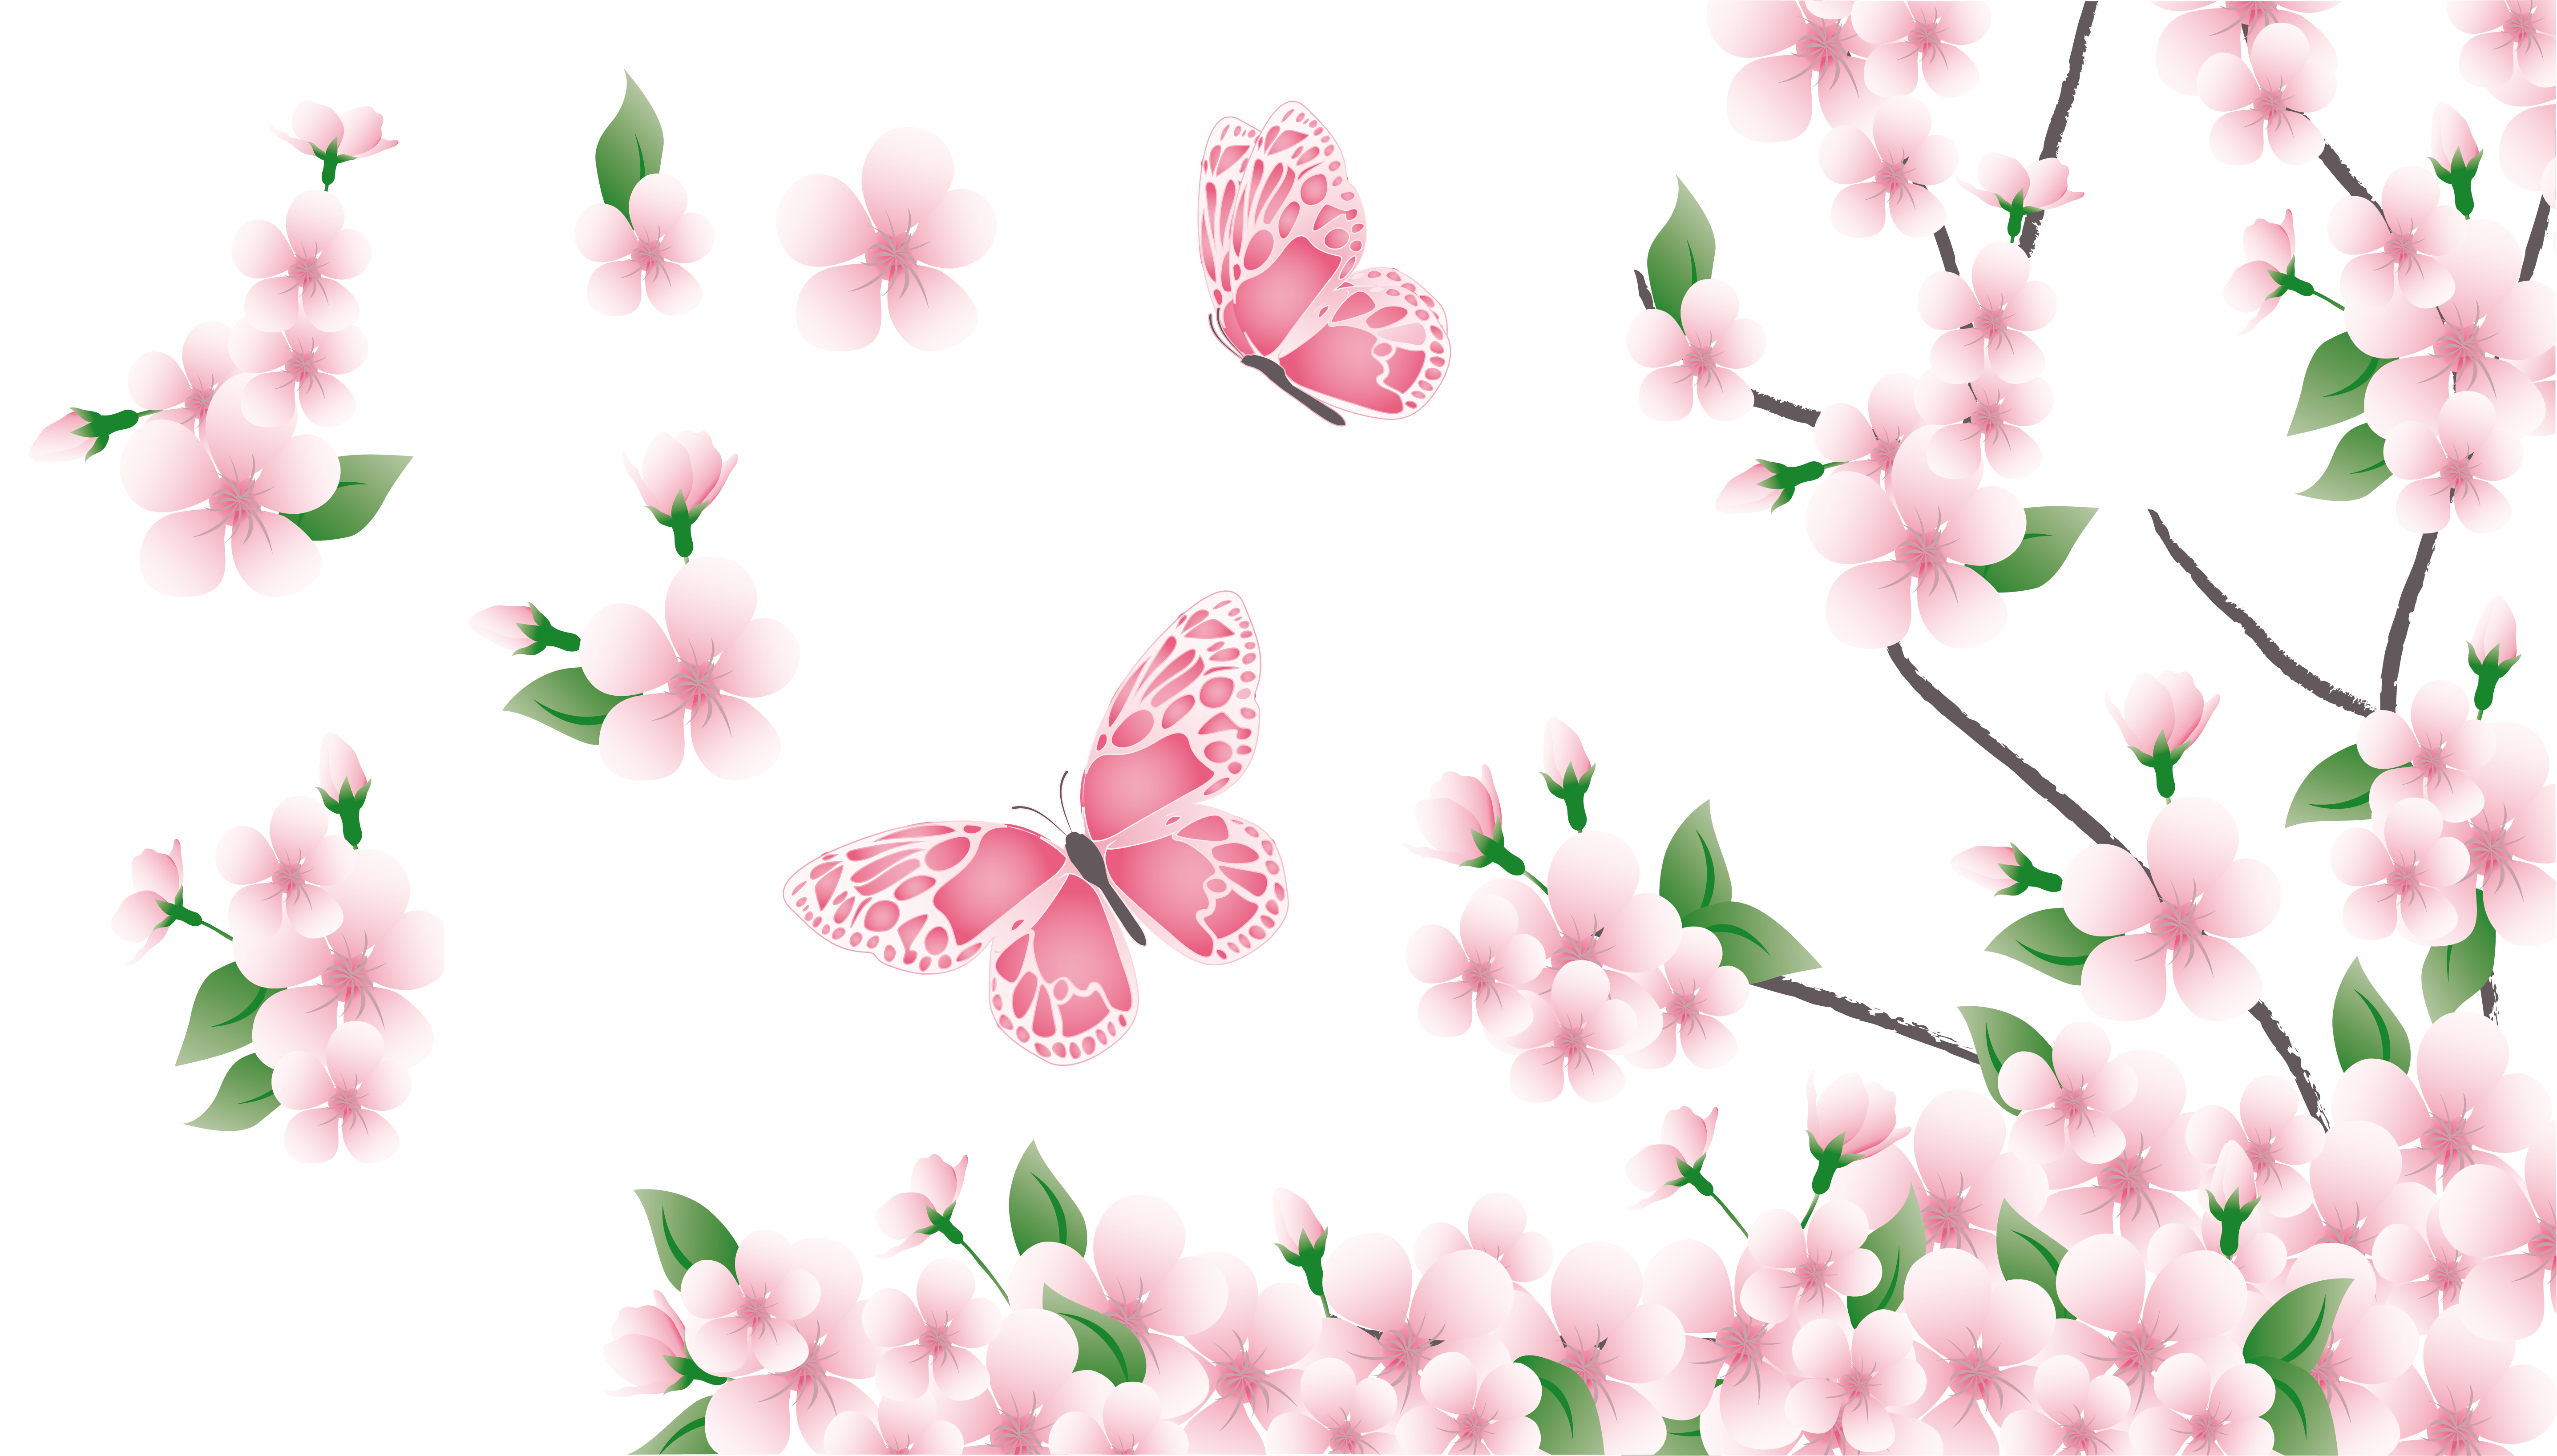 Fiesta clipart spring. Branch with pink flowers